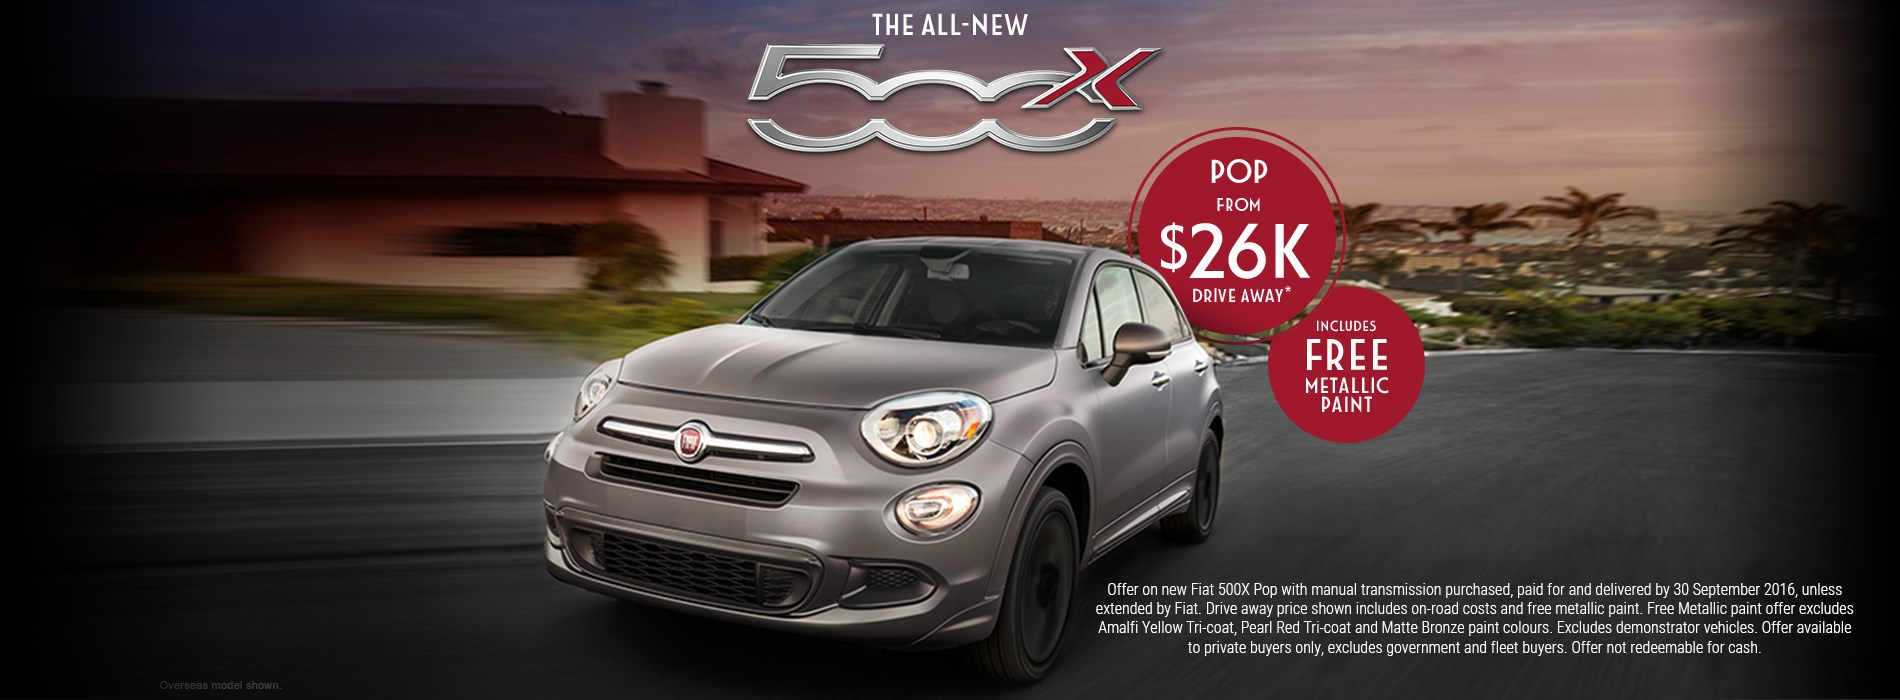 Fiat 500x Pop $26k Drive Away Offer